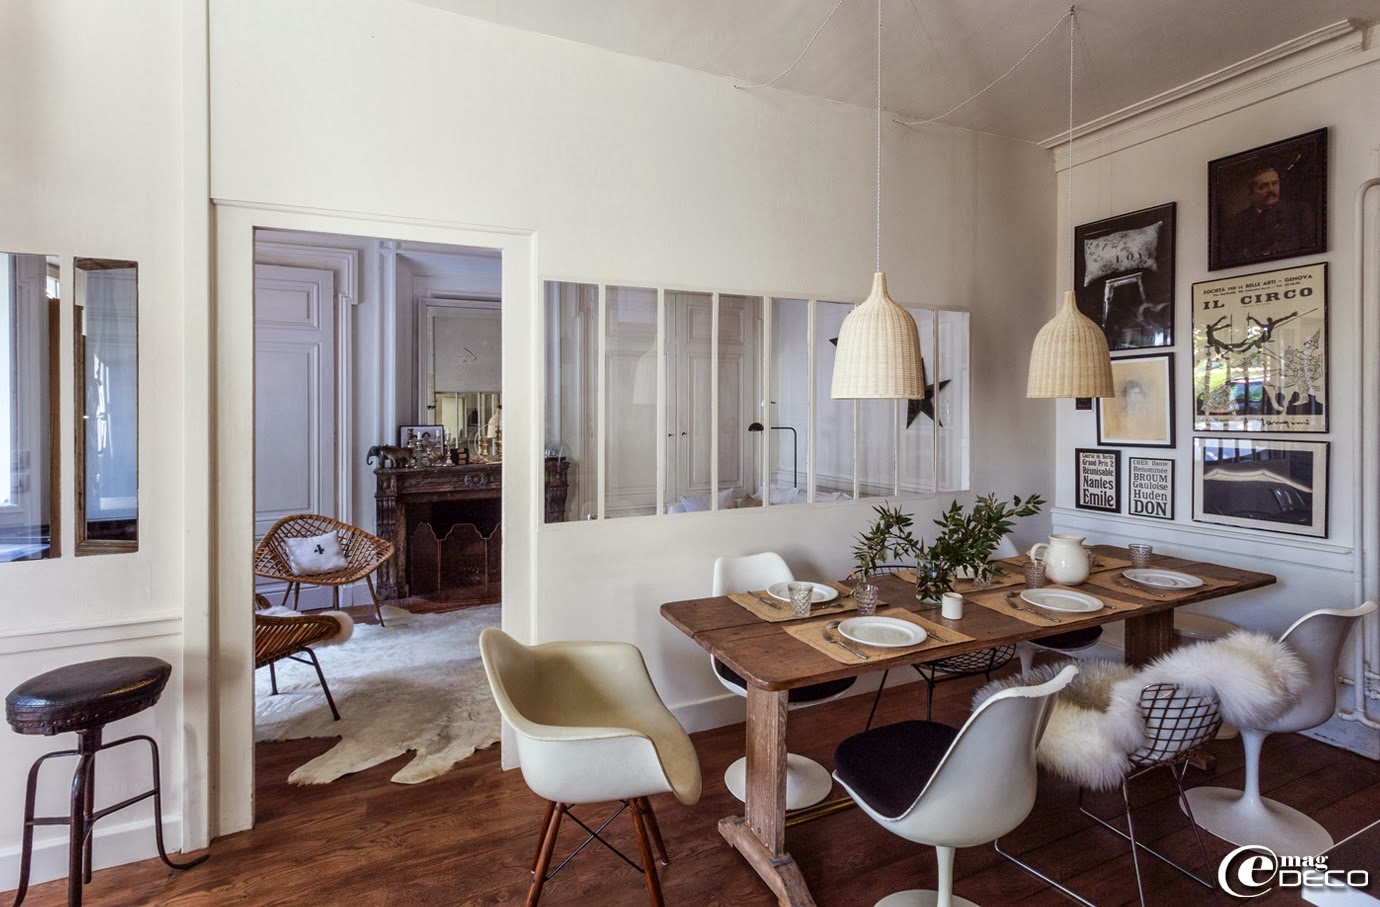 interior decorative florence bouvier39s house in lyon With idee deco cuisine avec chaise pivotante salle a manger